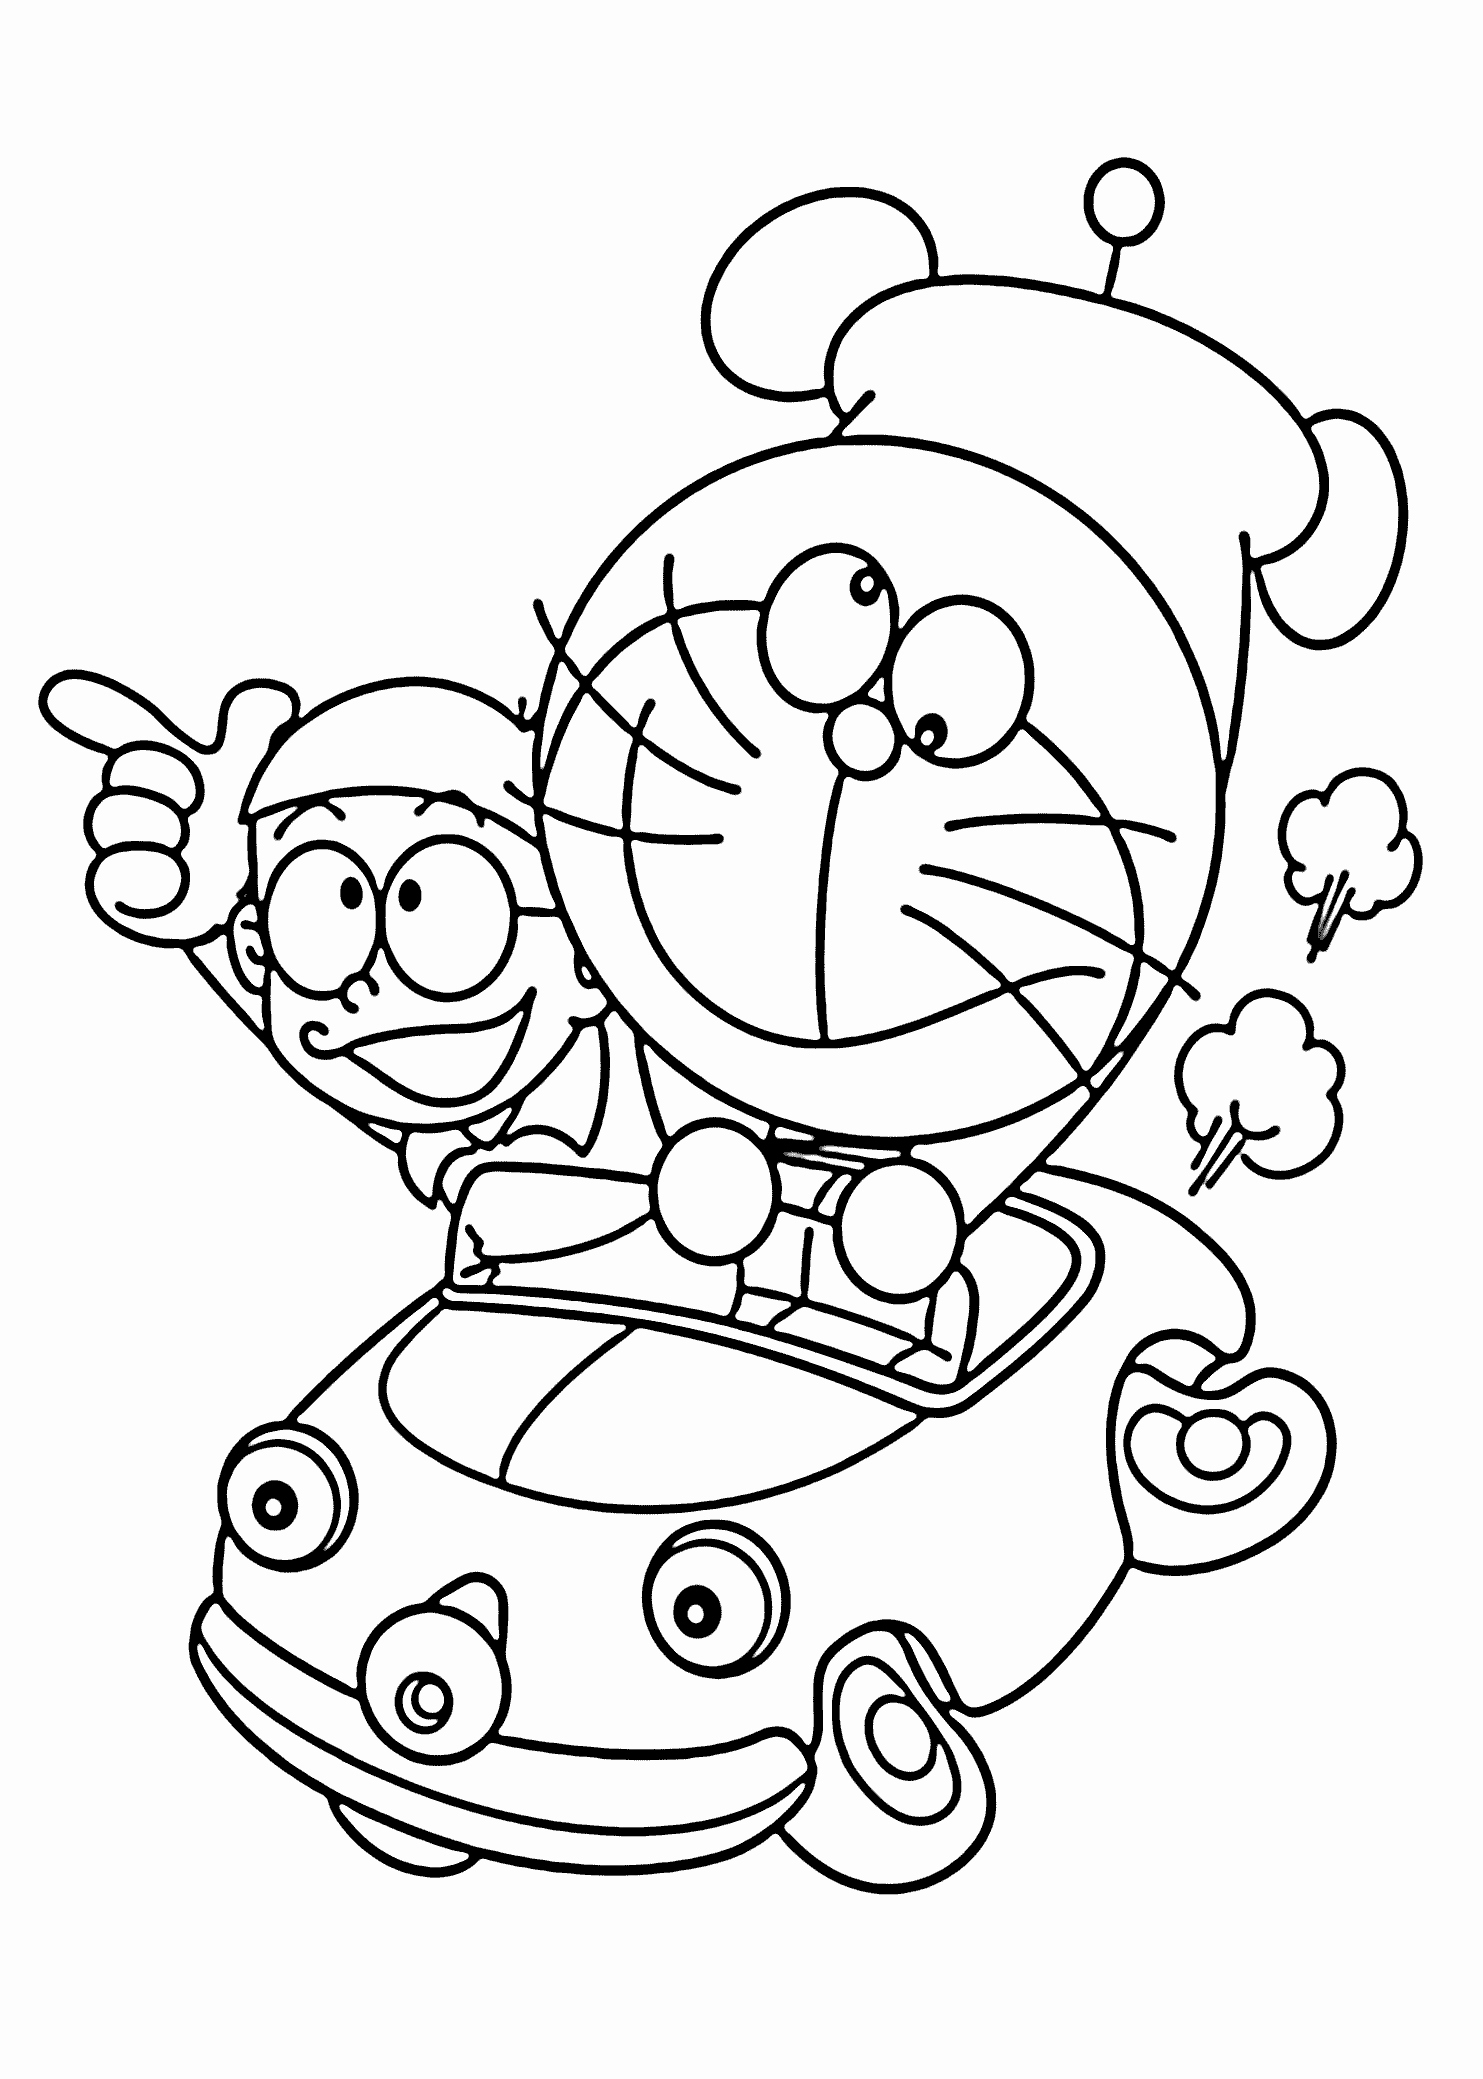 noah's ark coloring pages printable Collection-Children s Church Coloring Pages Fresh Elegant Free Halloween Coloring Sheets Coloring 20-h